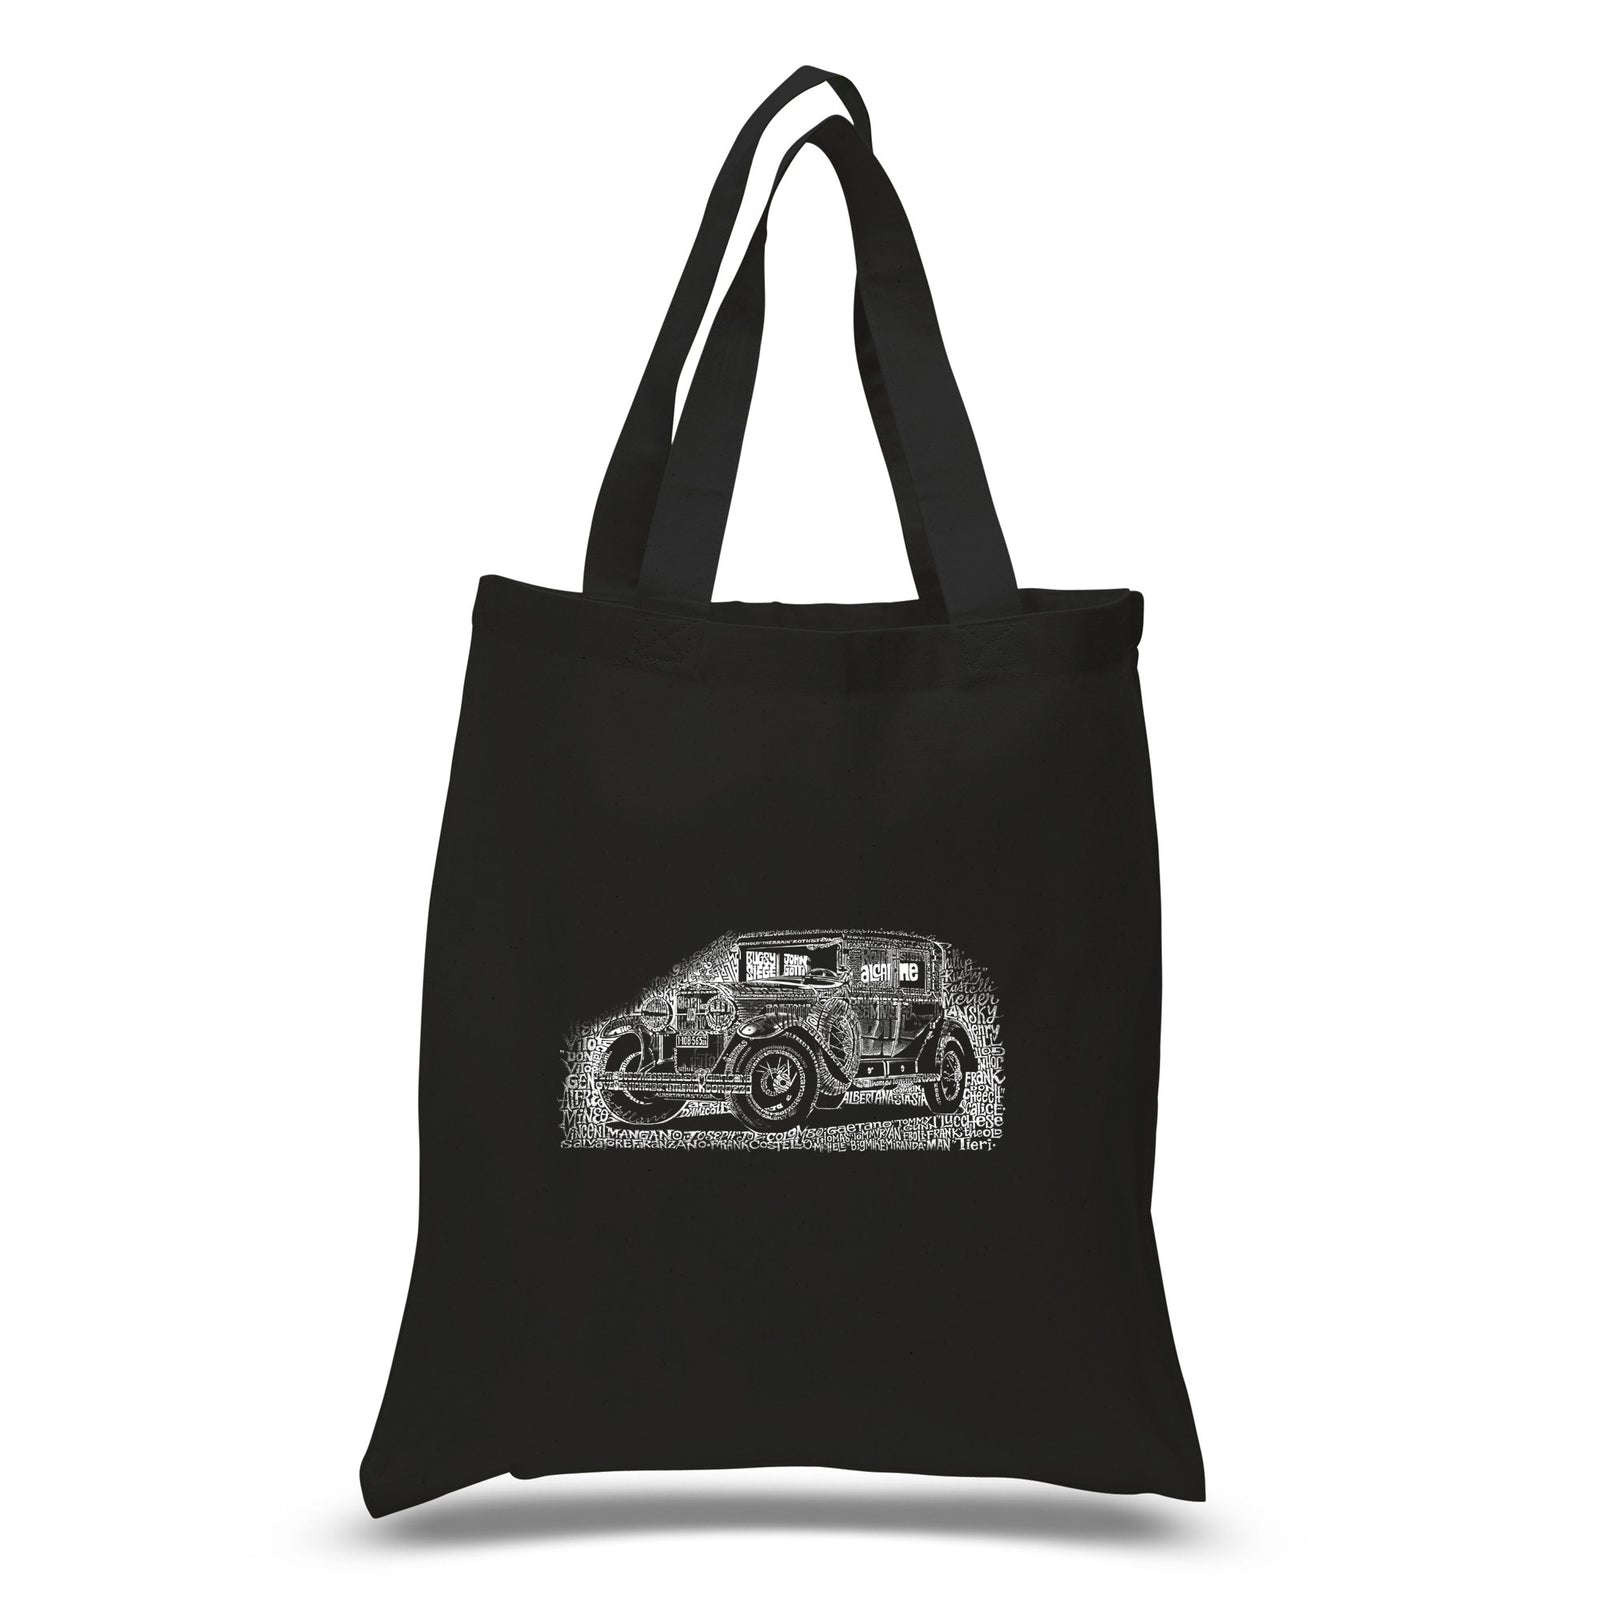 Small Tote Bag - Legendary Mobsters